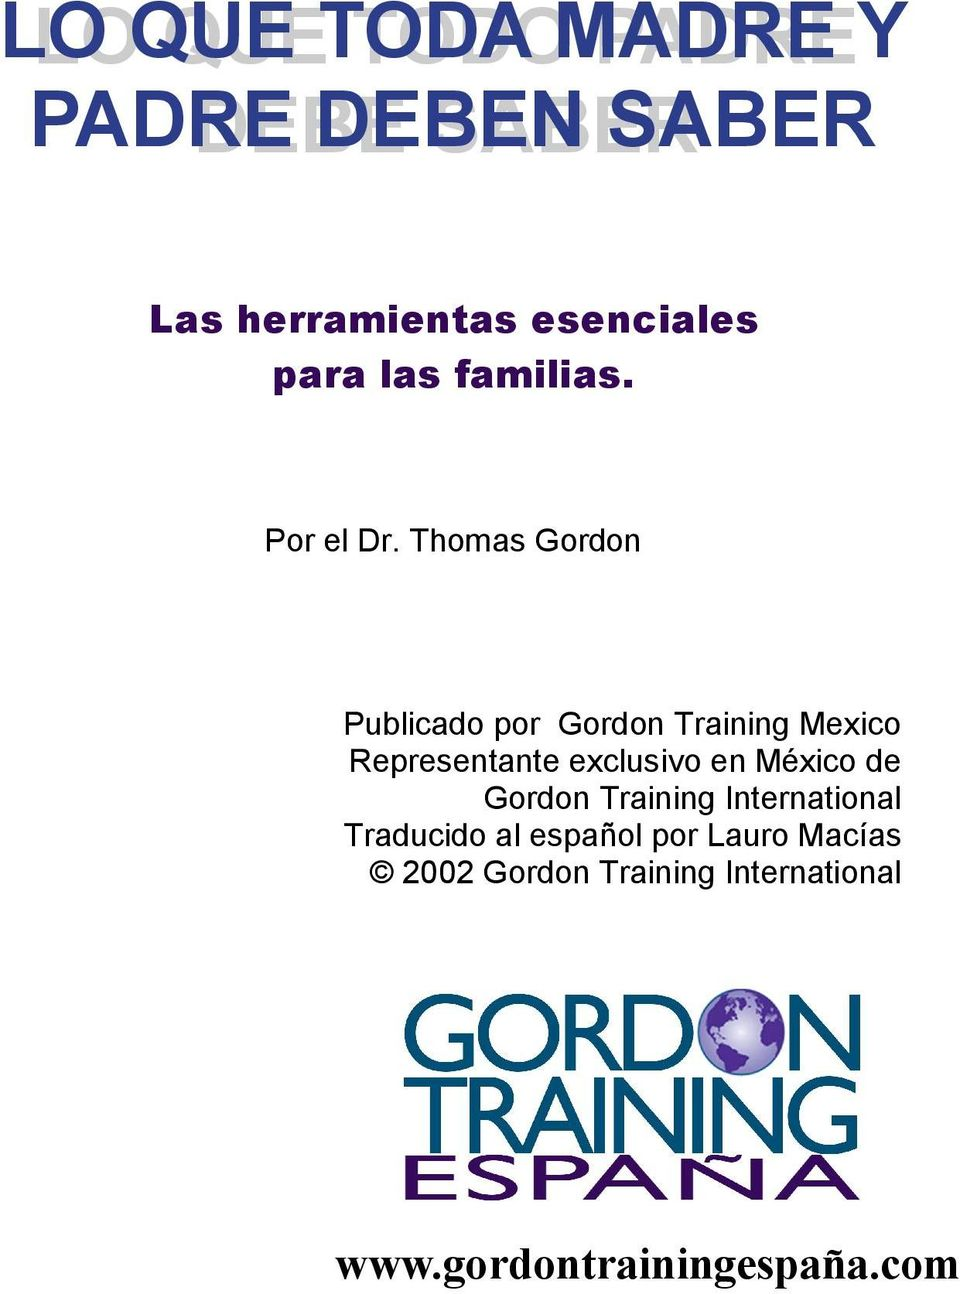 Thomas Gordon Publicado por Gordon Training Mexico Representante exclusivo en México